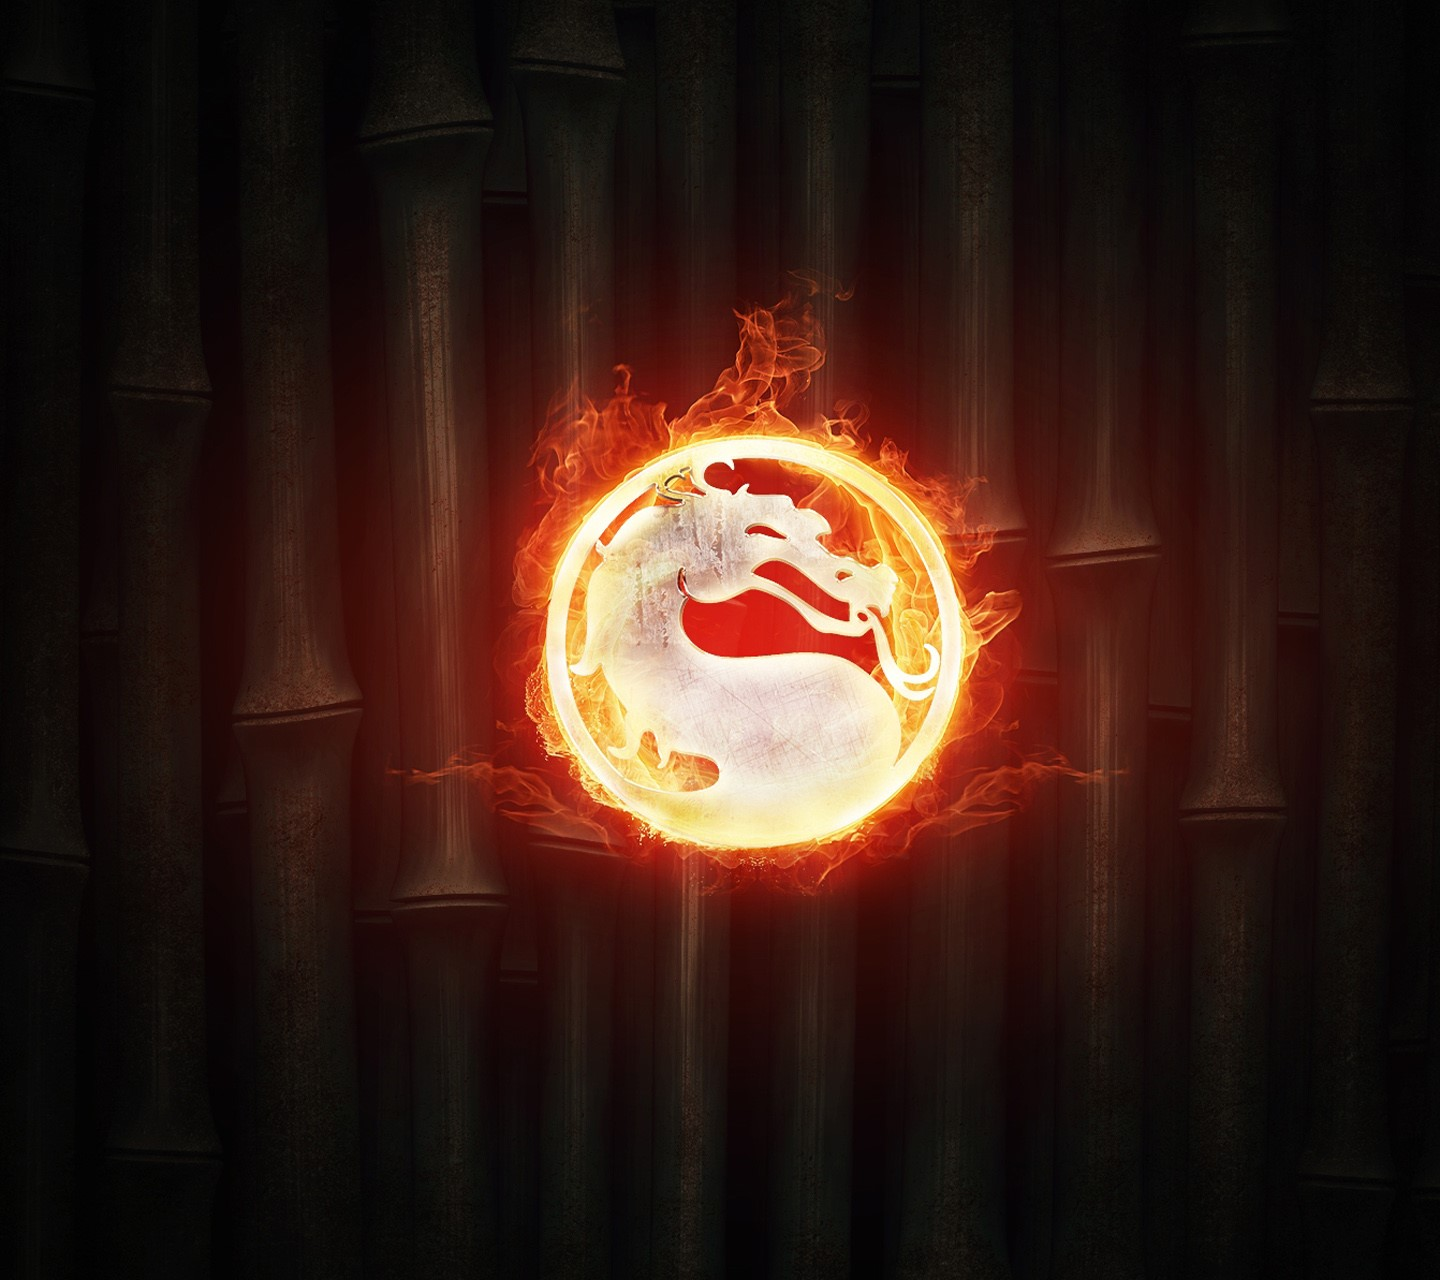 Mortal Kombat Fire wallpaper 9682818